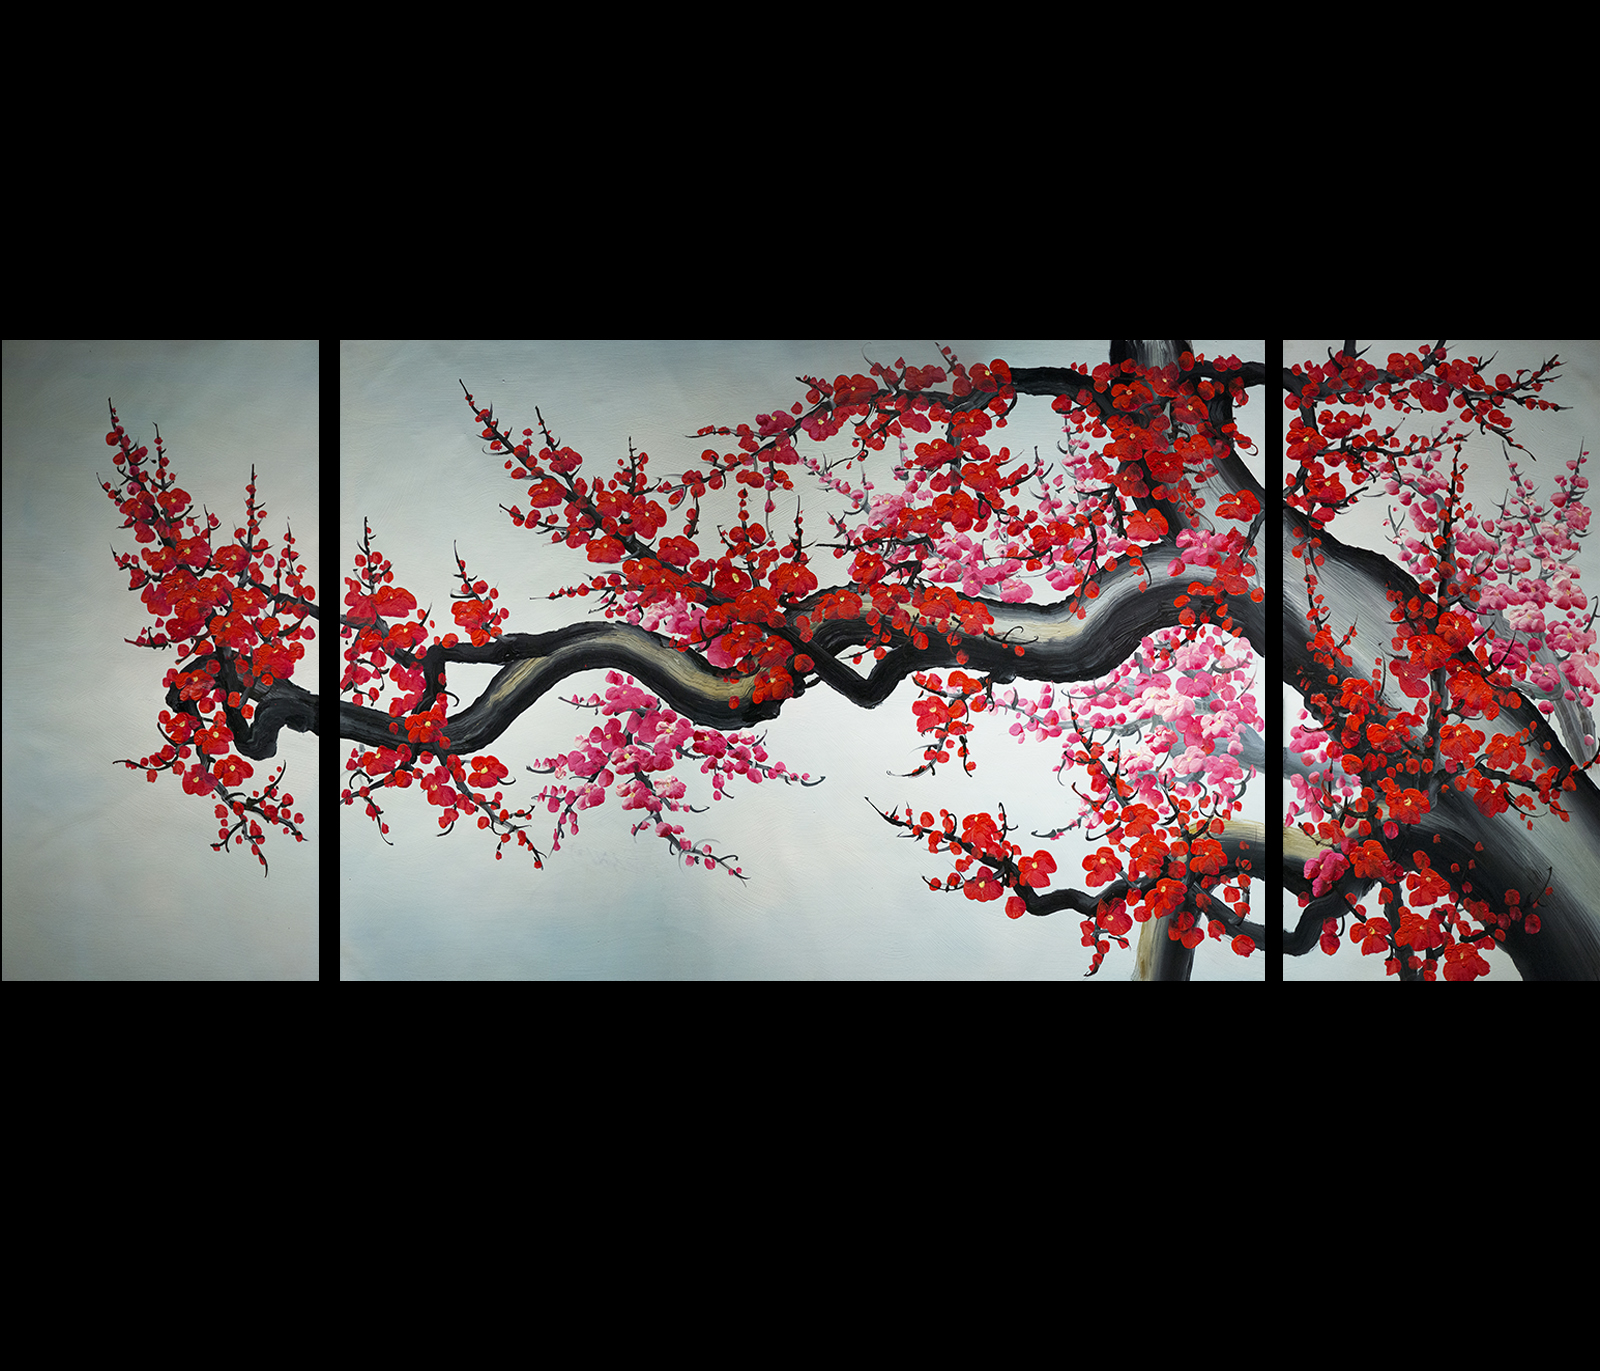 Art feng shui painting koi fish painting japanese koi for Cherry blossom mural works